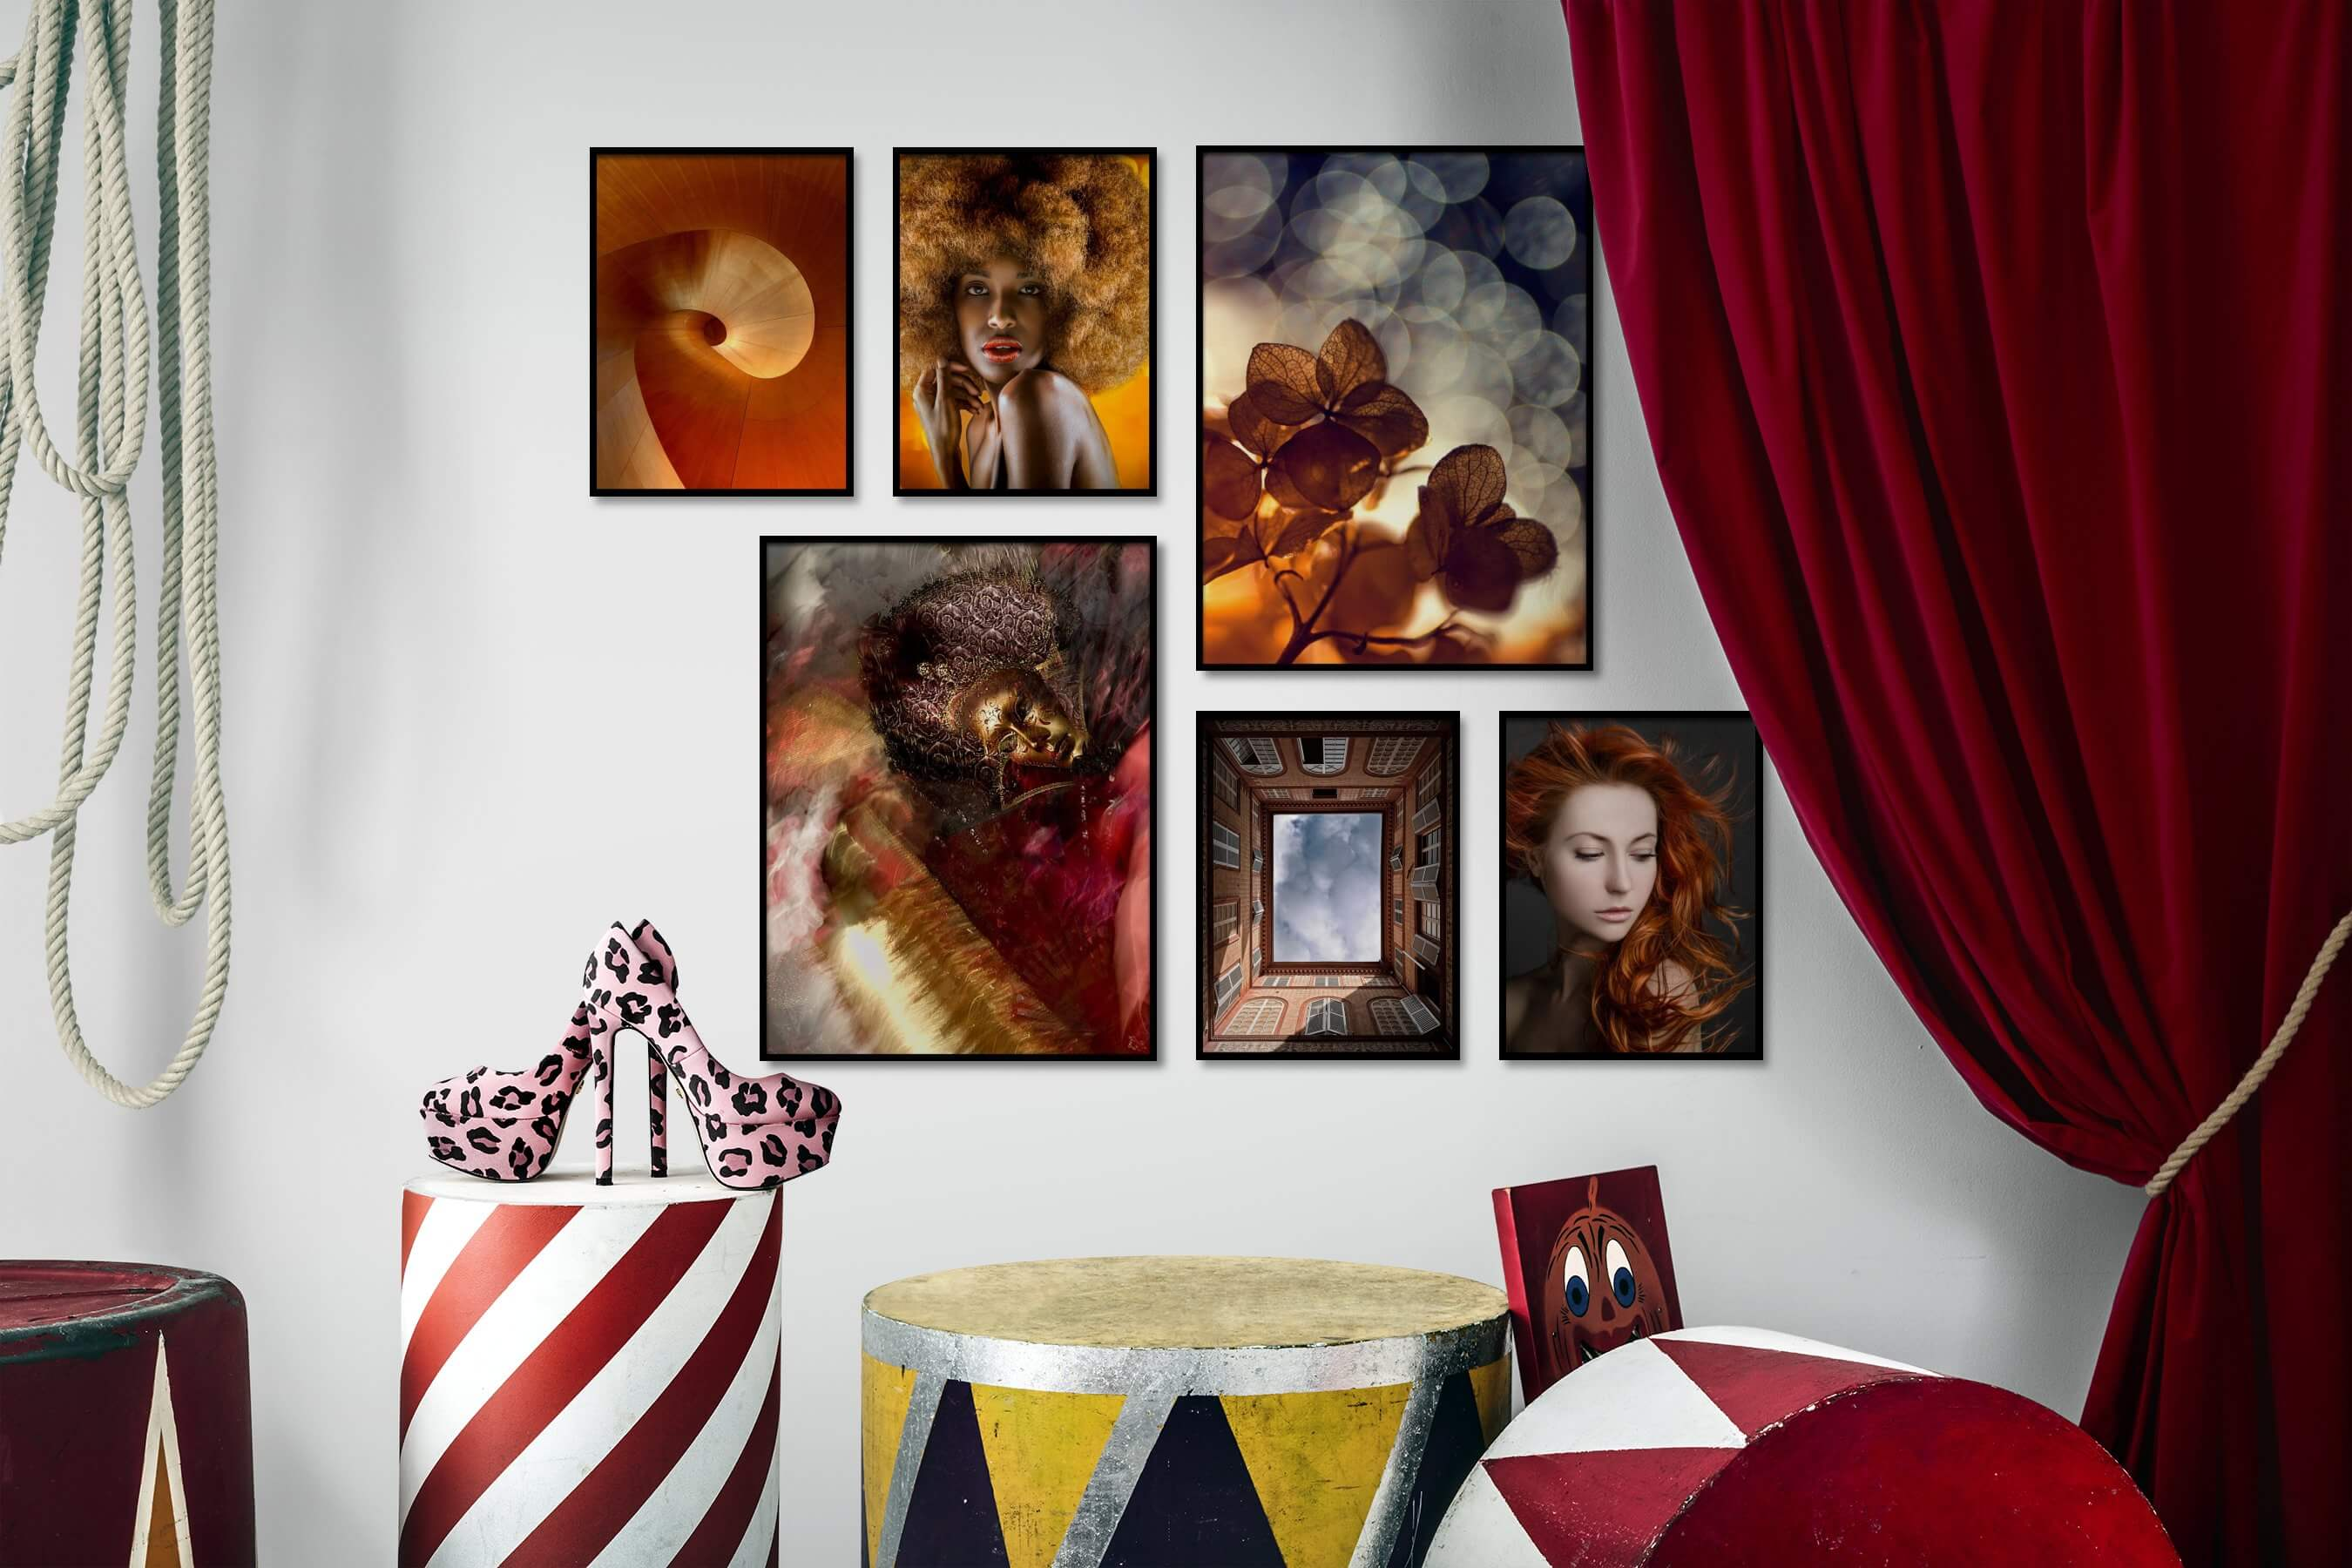 Gallery wall idea with six framed pictures arranged on a wall depicting For the Moderate, Fashion & Beauty, Vintage, Artsy, For the Maximalist, and Flowers & Plants